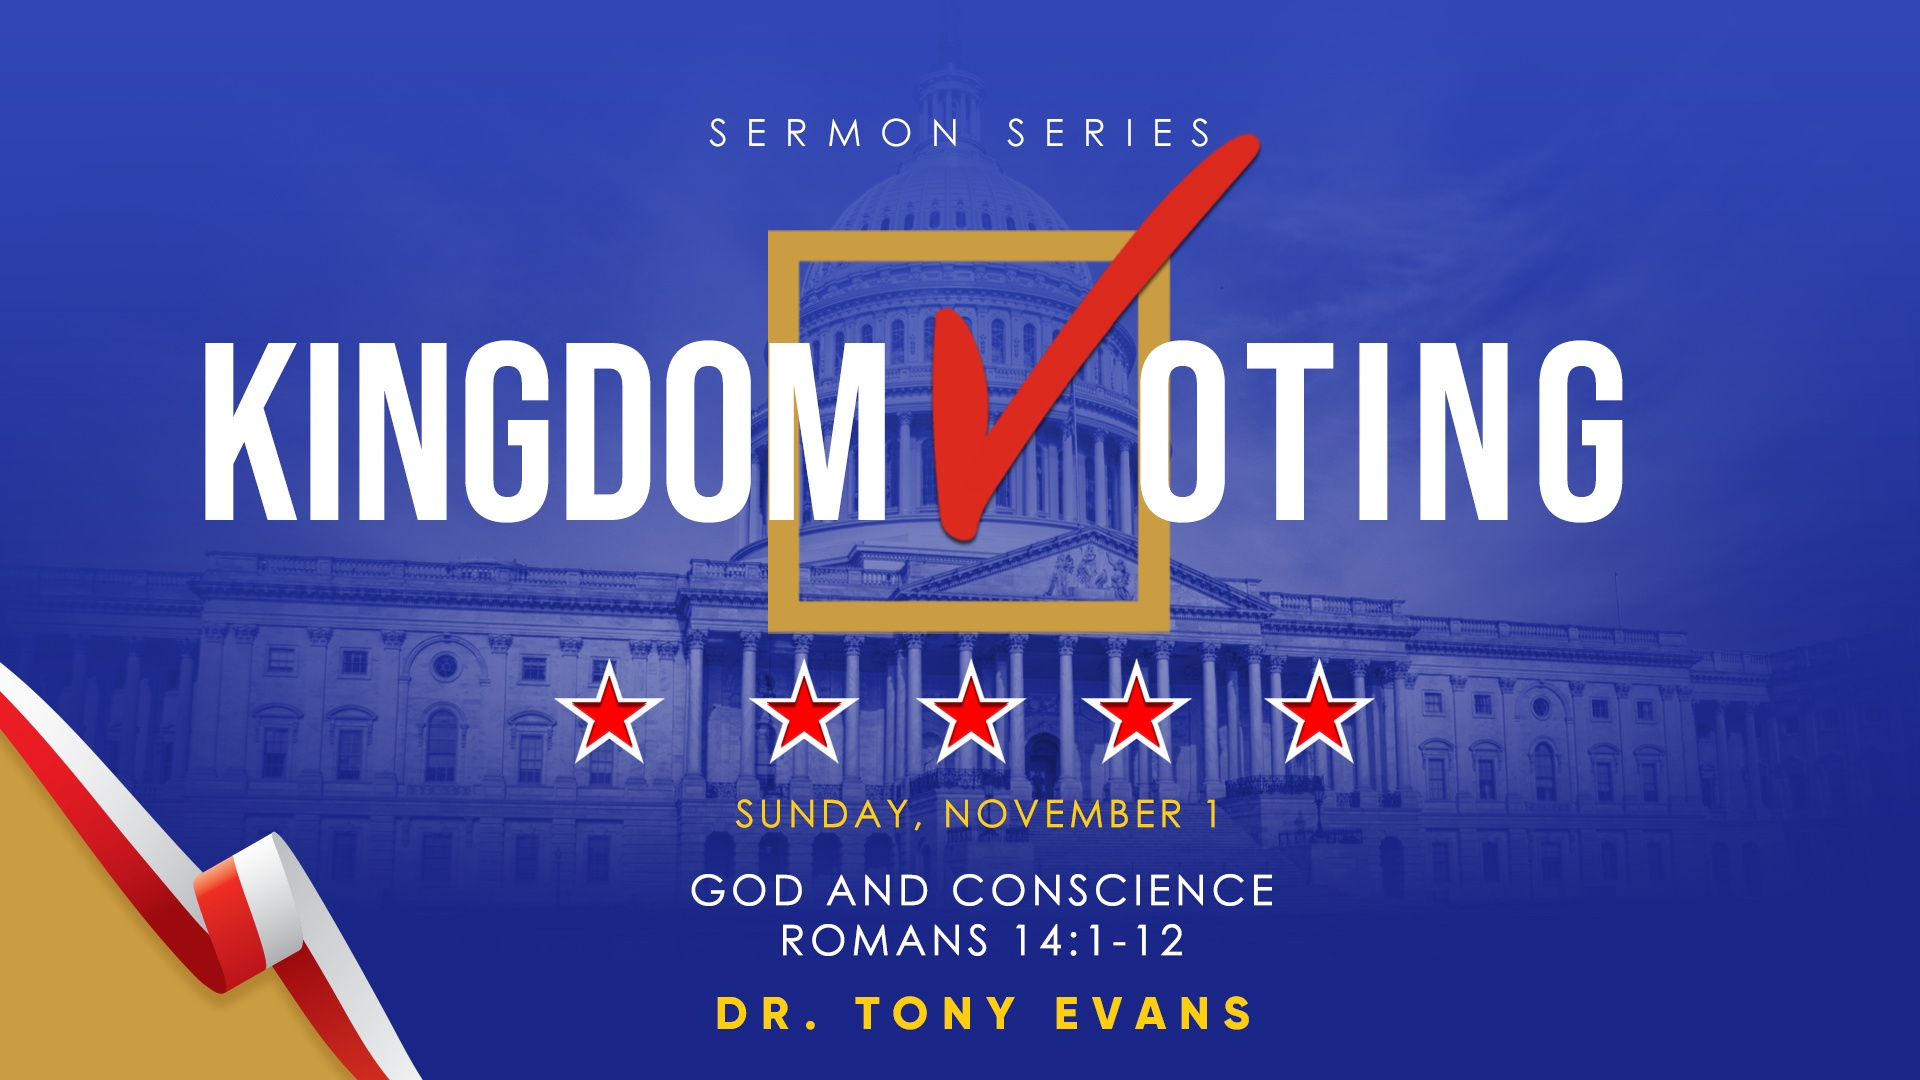 God and Conscience by Dr. Tony Evans